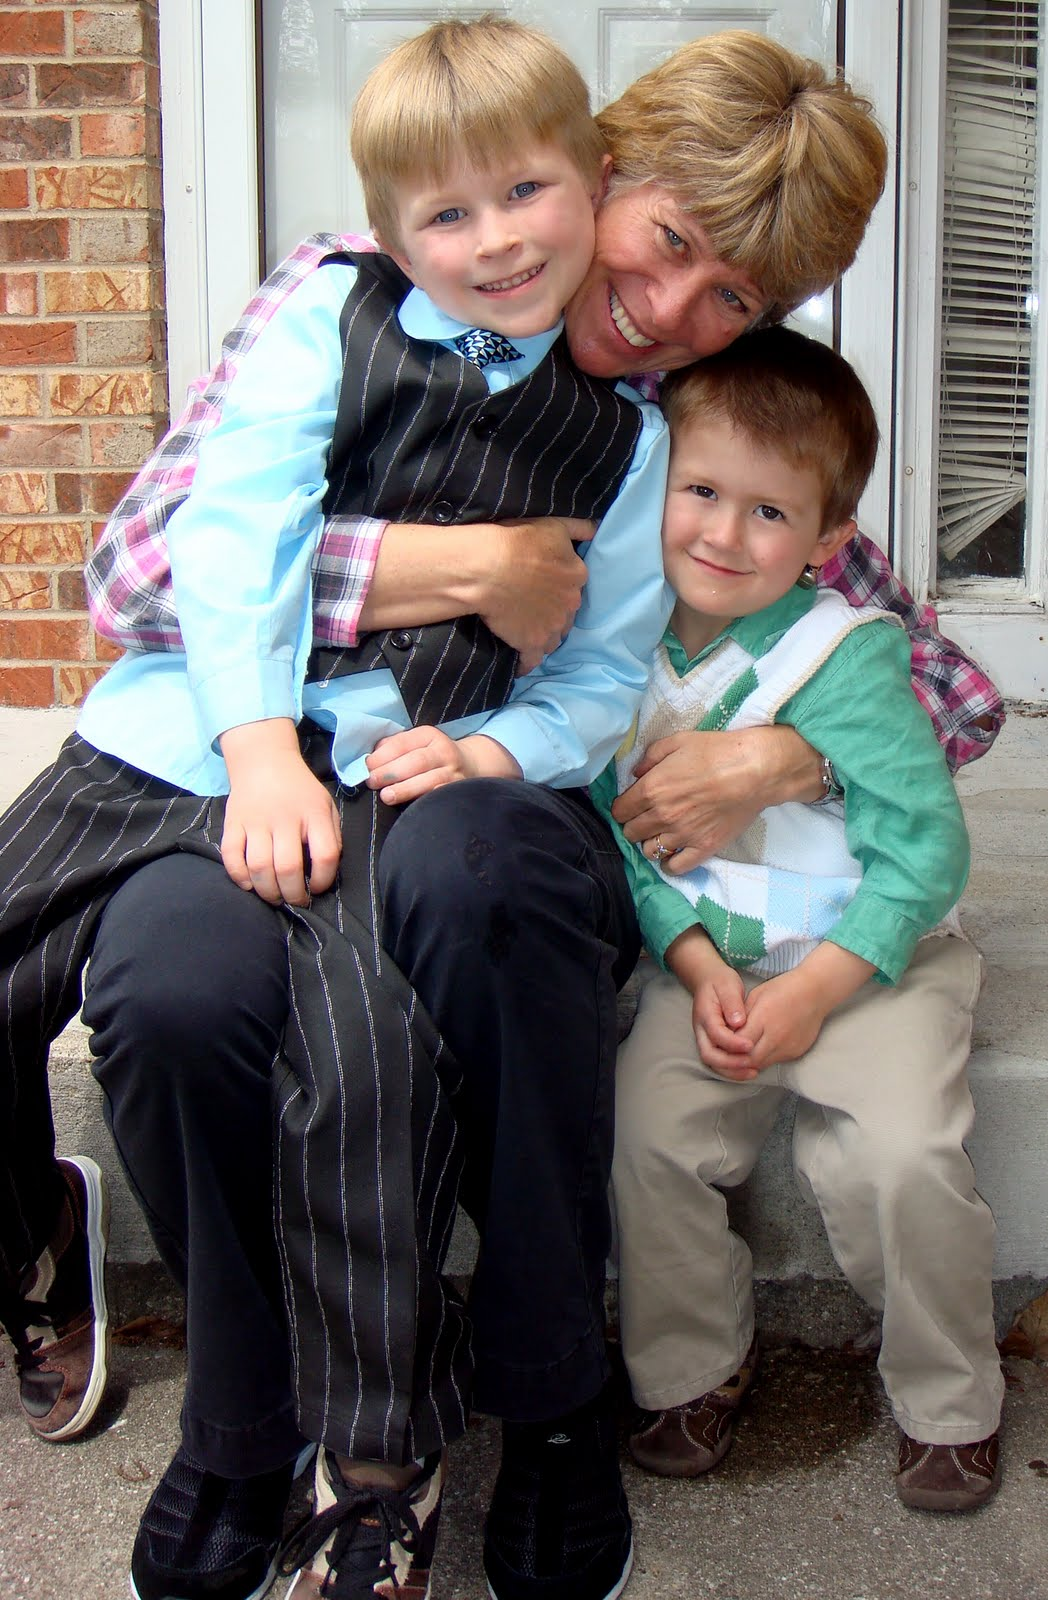 The boys...they love their Gramma!